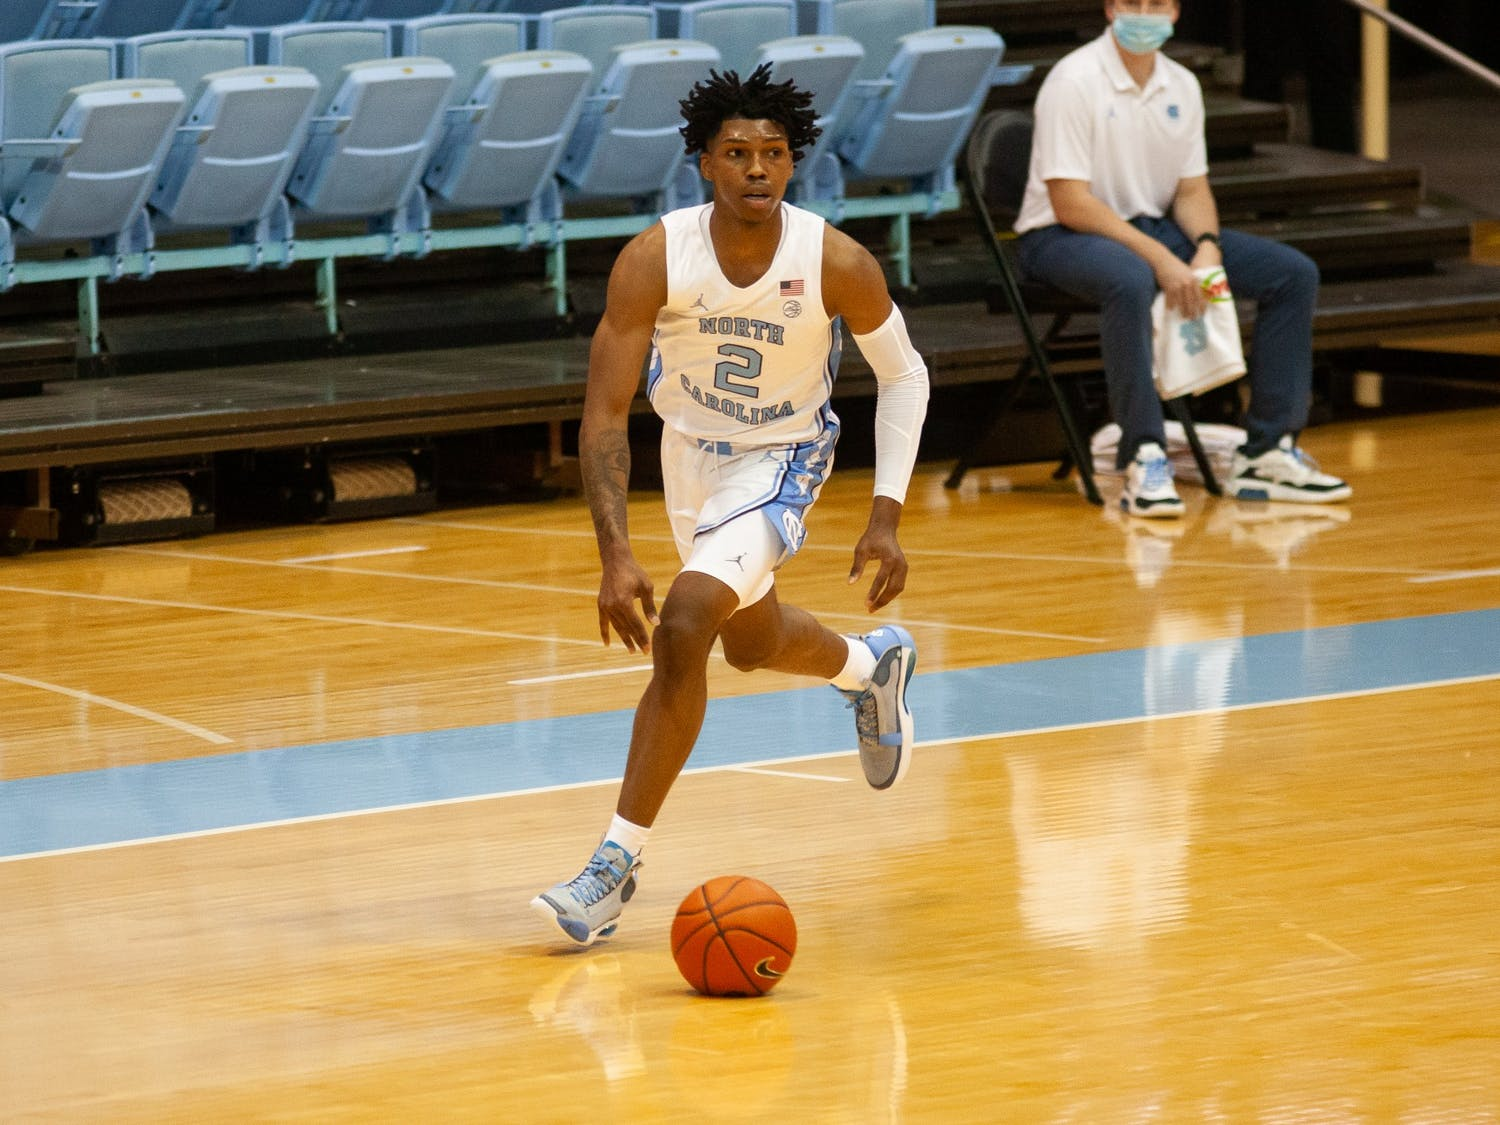 First-year guard Caleb Love (2) drives the ball in the game against the College of Charleston on Wednesday, Nov. 25, 2020.